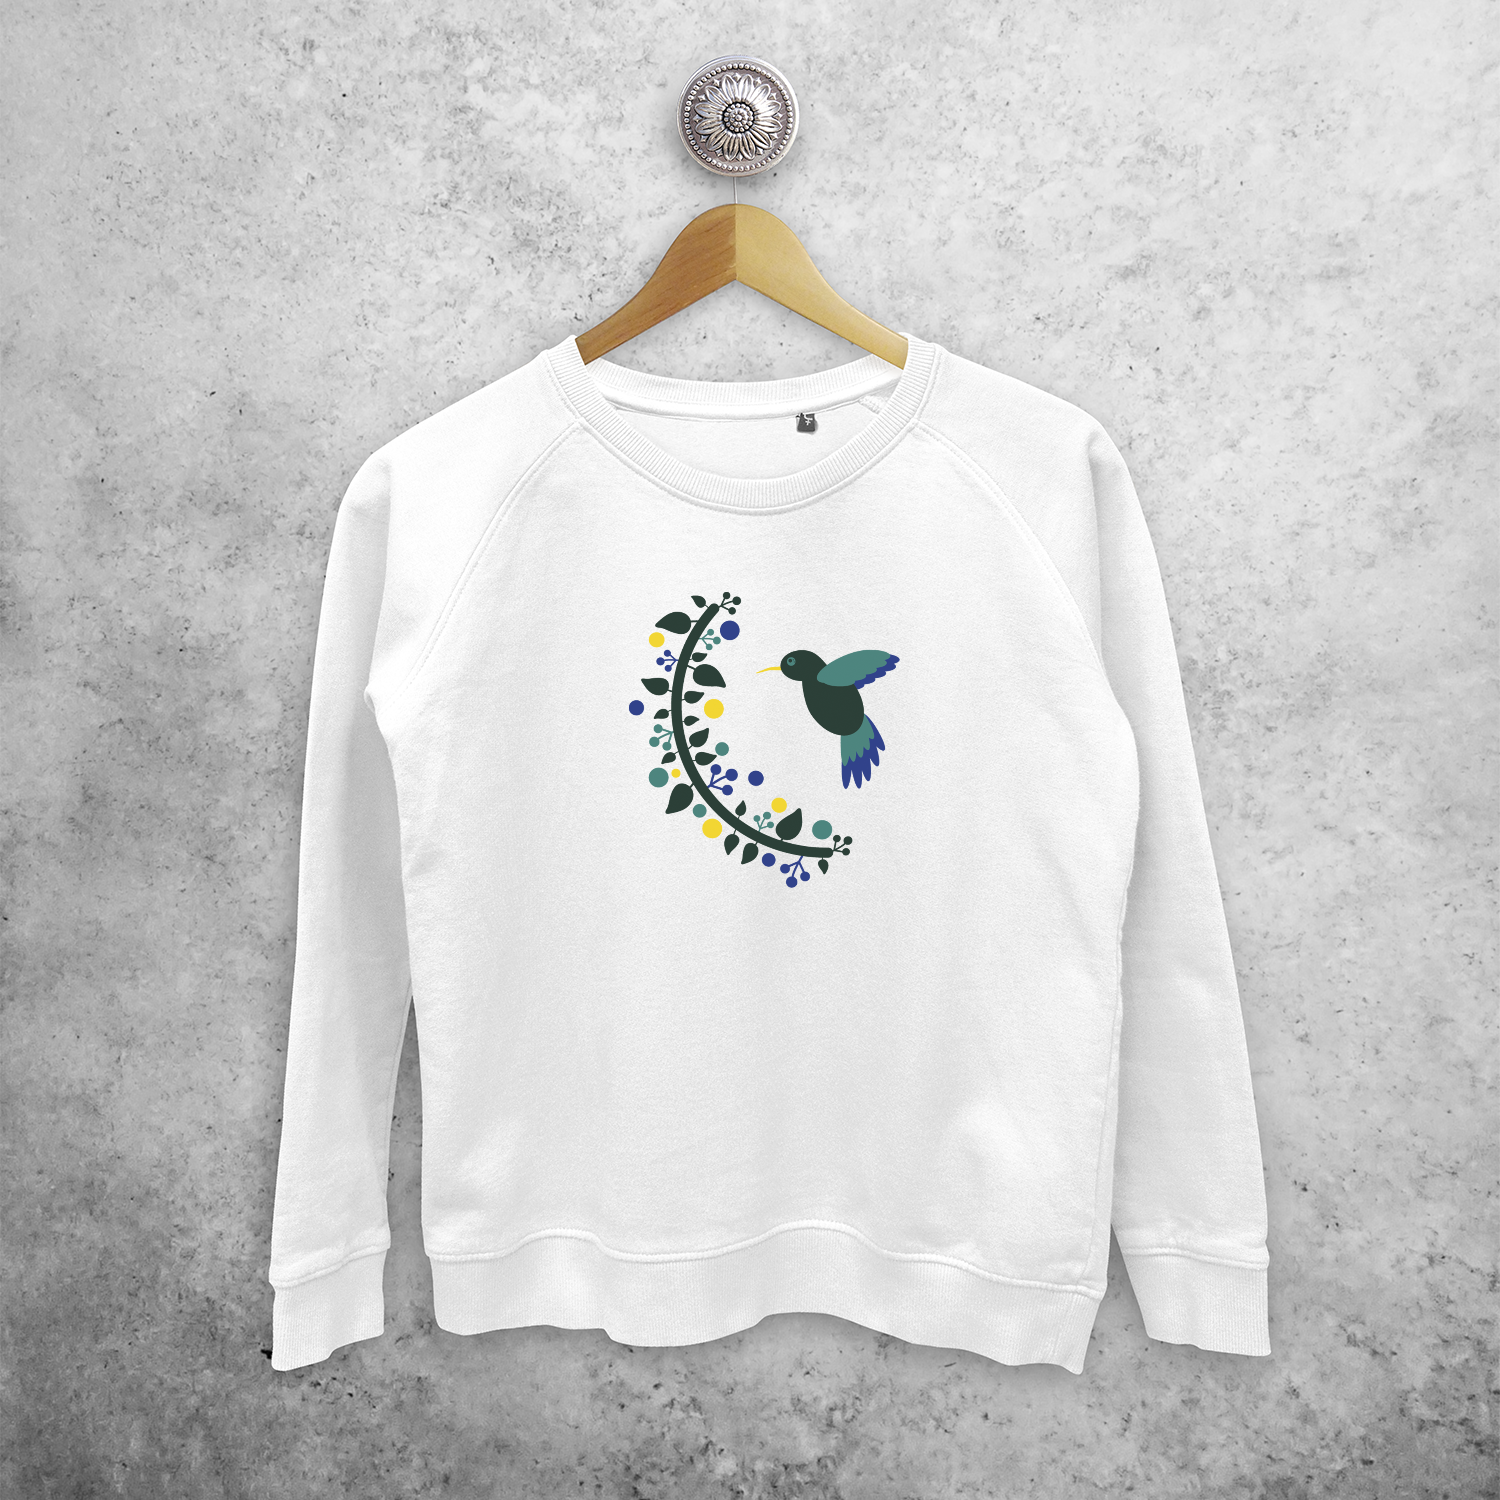 Hummingbird sweater